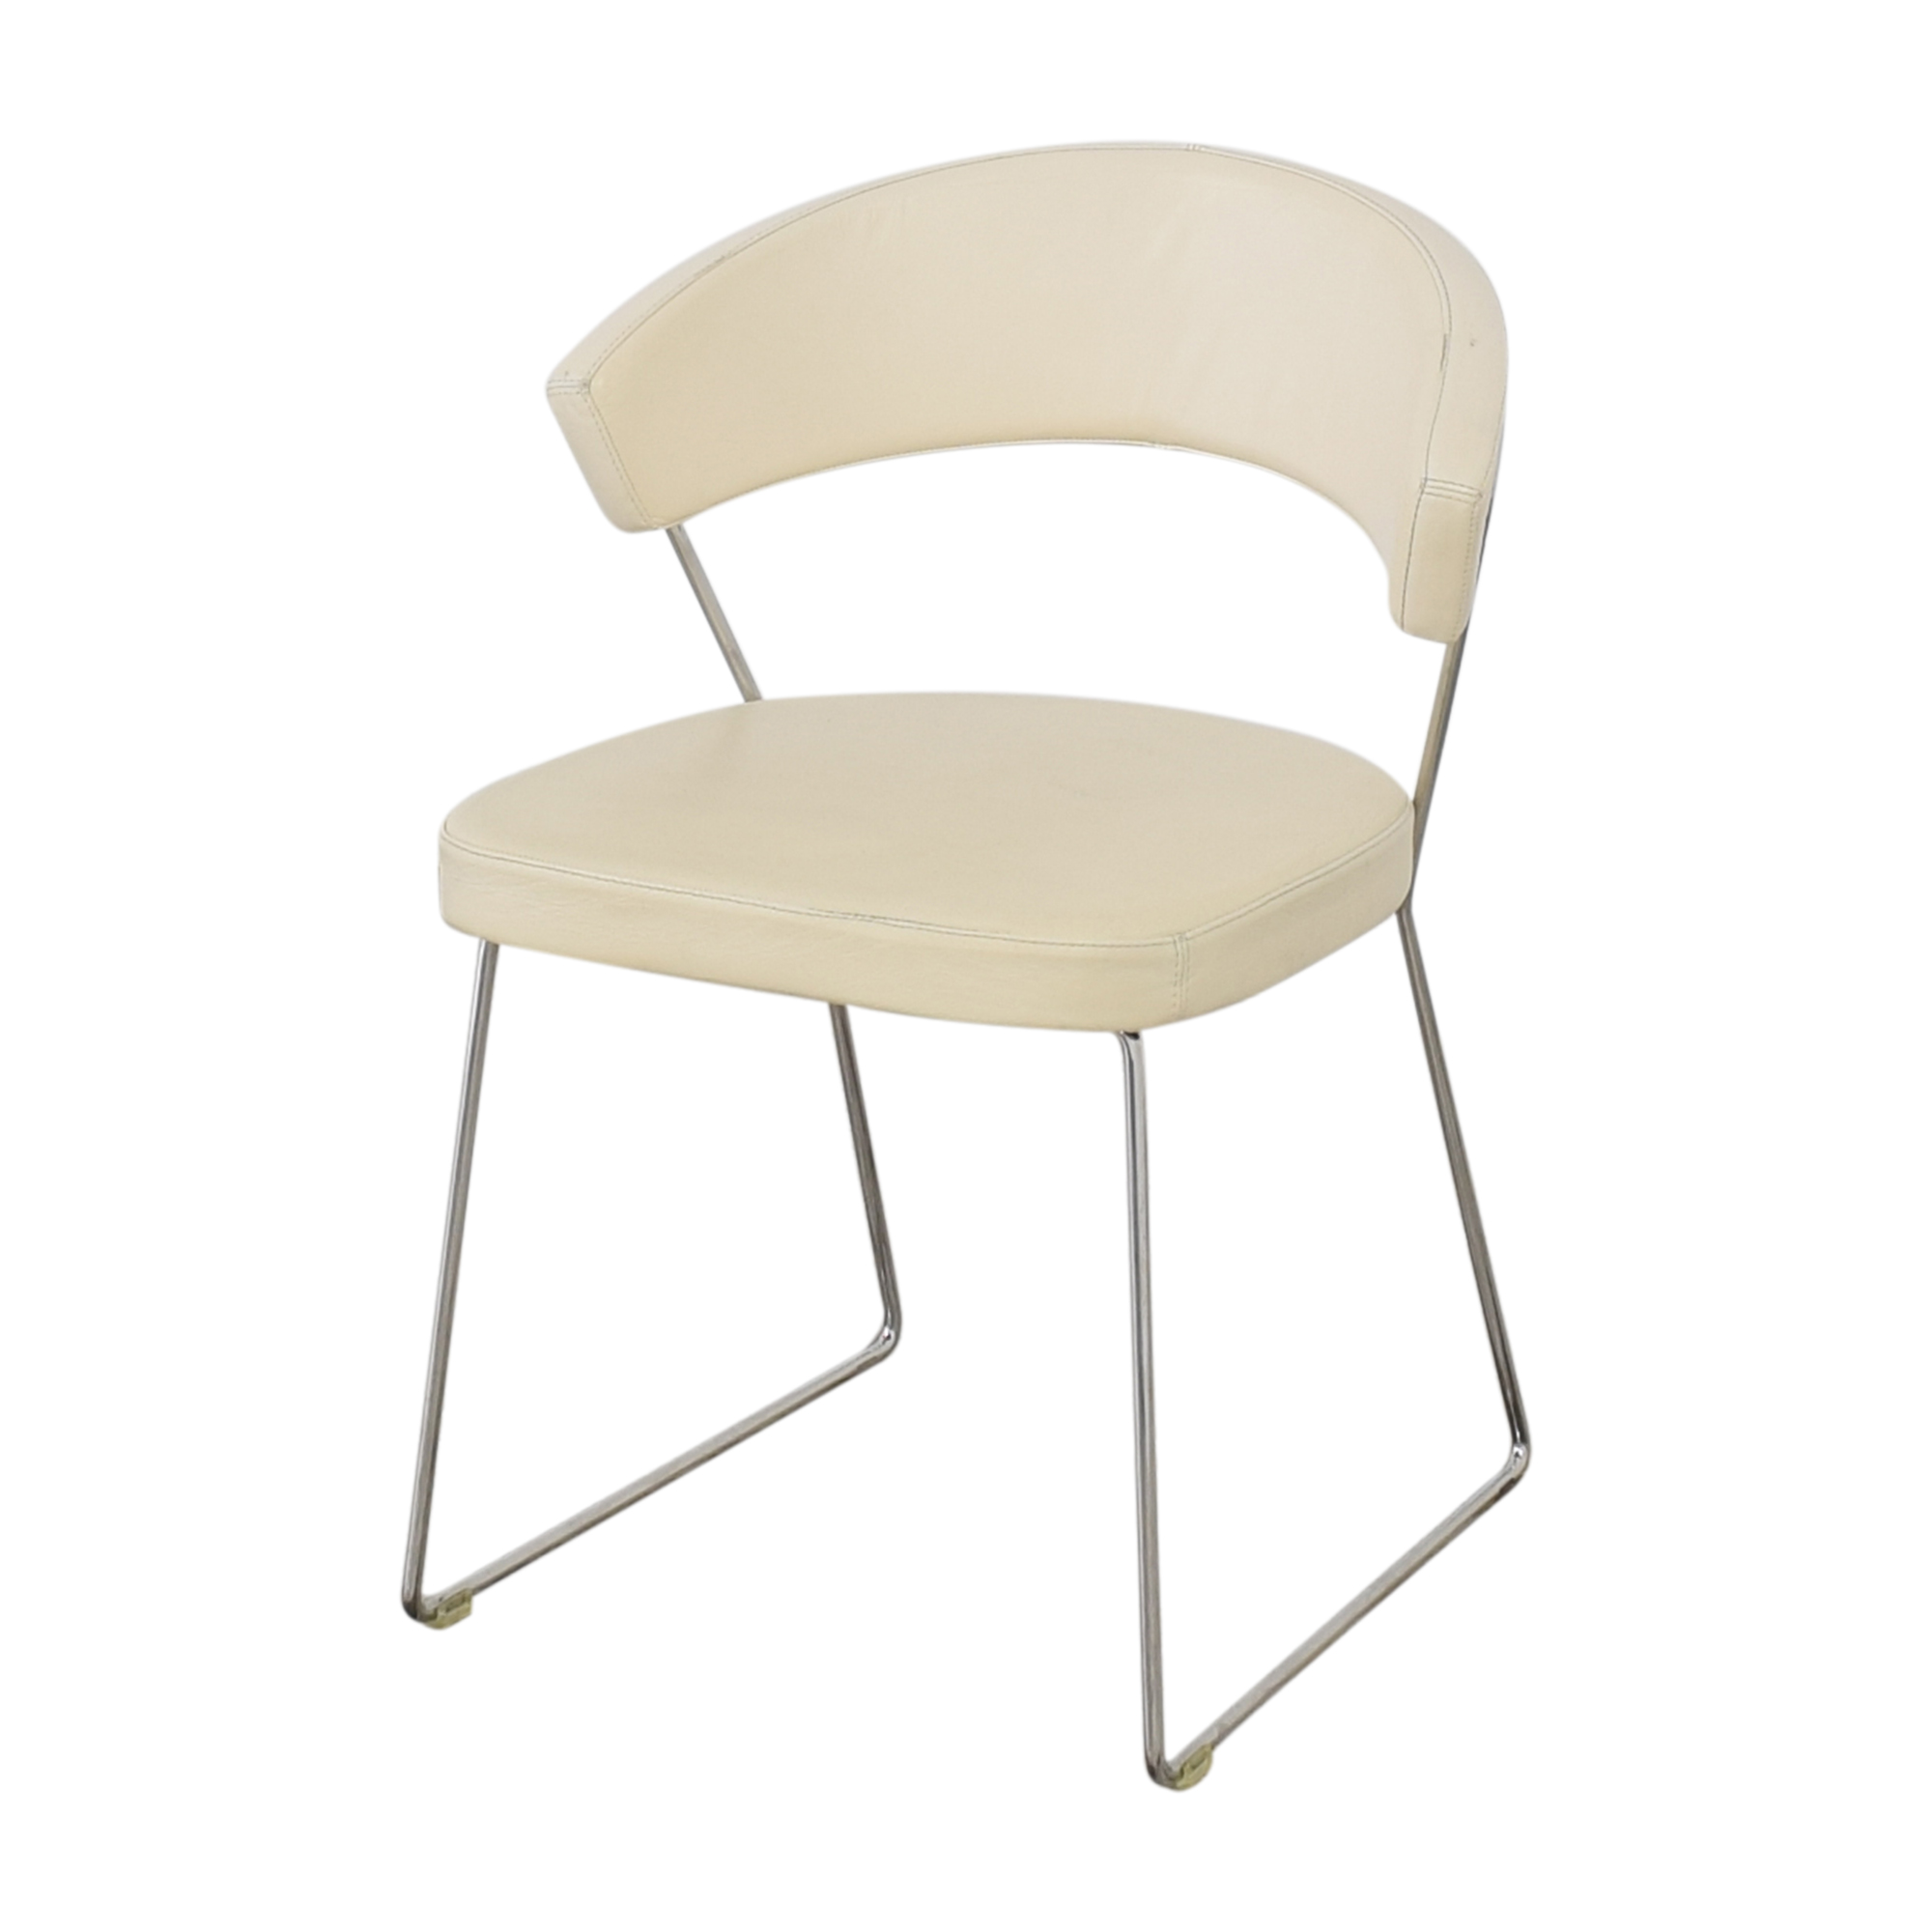 Calligaris Calligaris Icon Modern Dining Chairs on sale